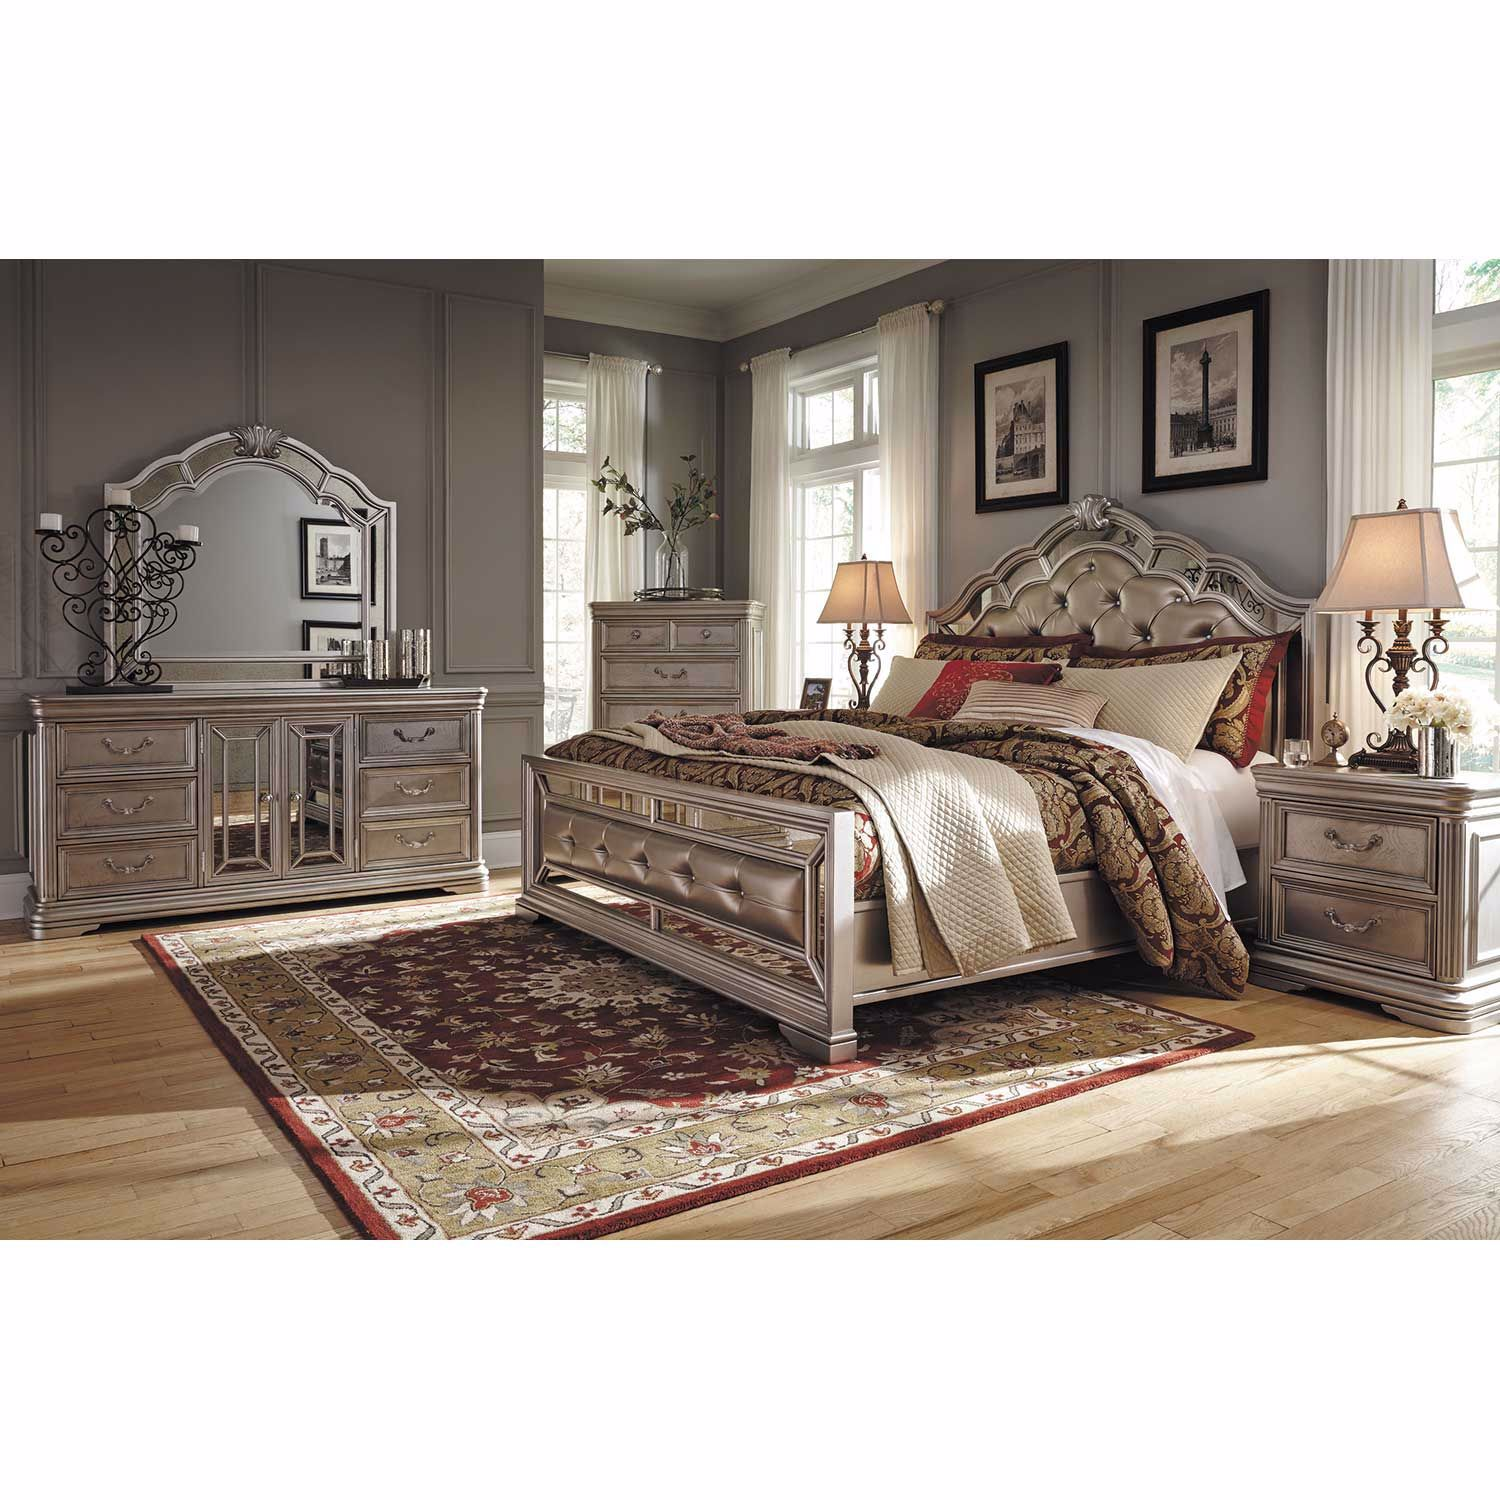 Picture of Birlanny Queen Panel Bed